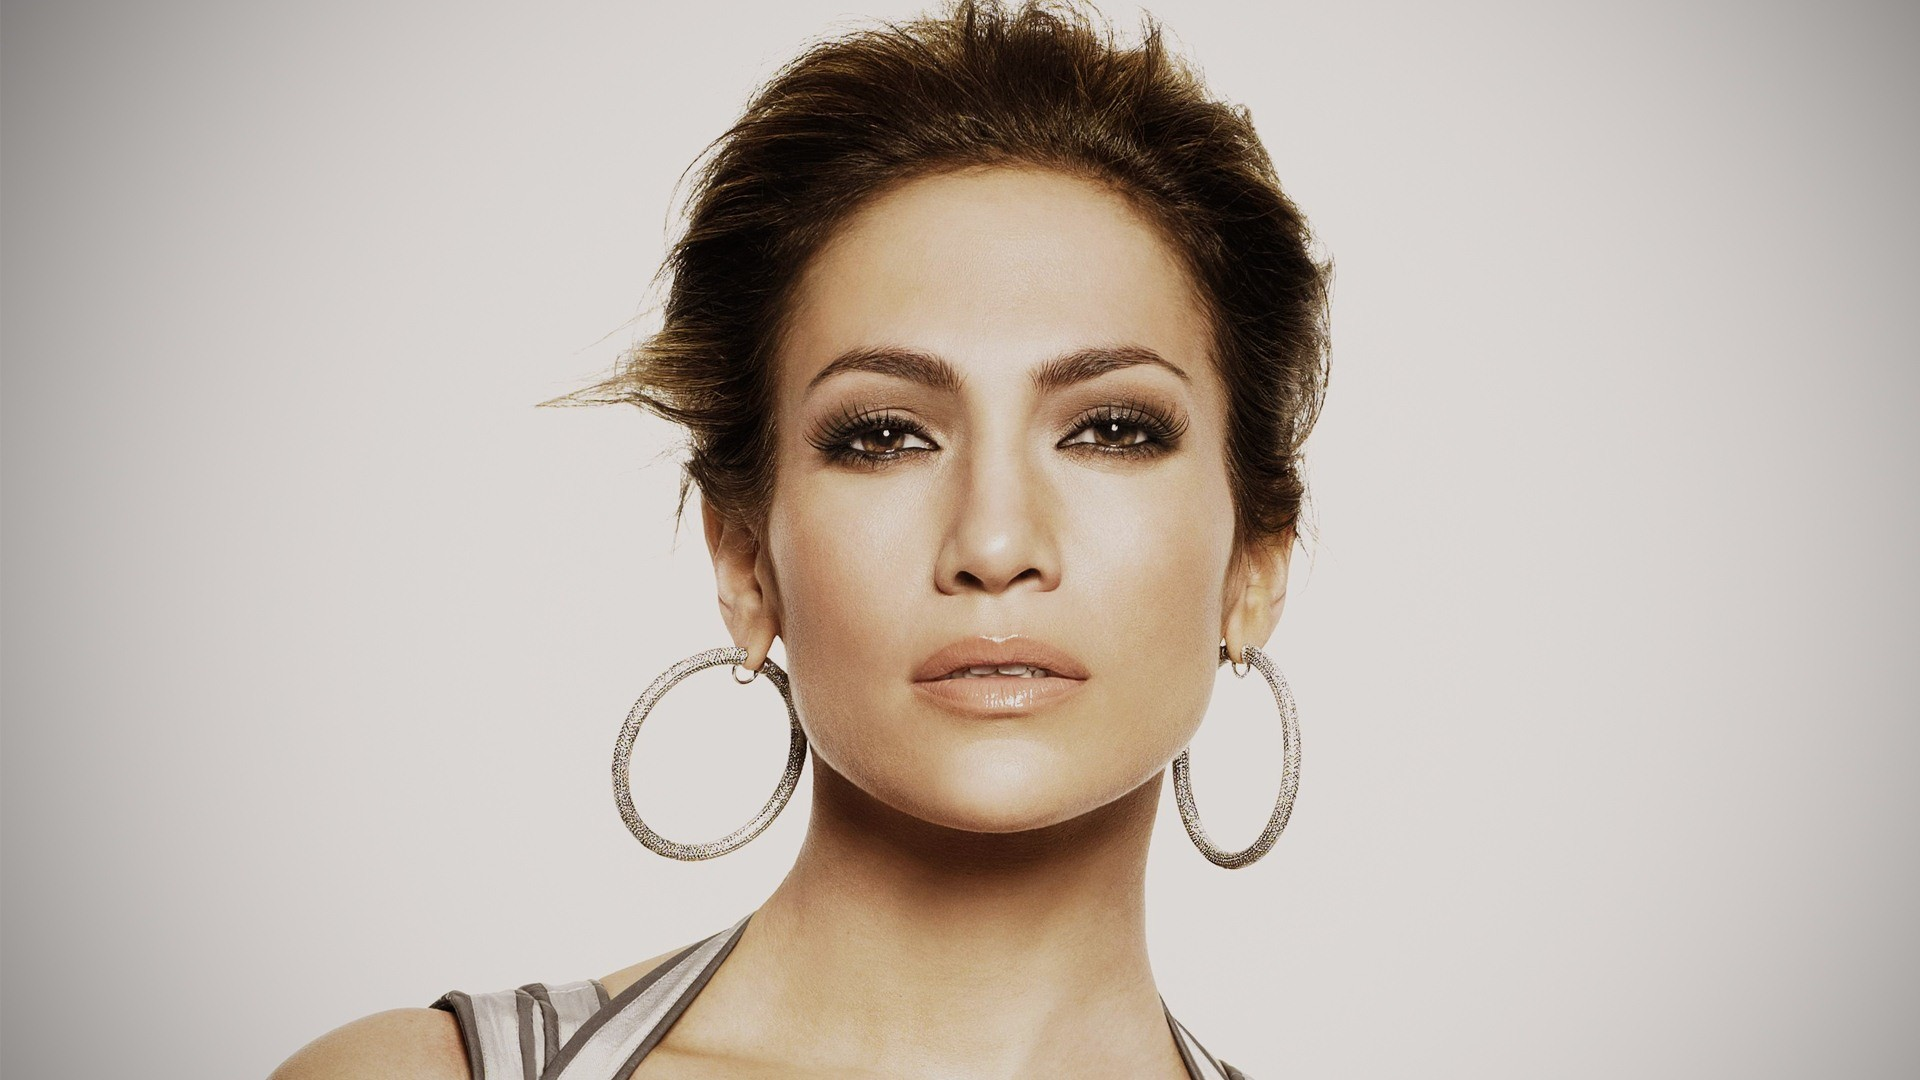 Jennifer Lynn Lopez born July 24 1969 is an American singer actress dancer and producer In 1991 Lopez began appearing as a Fly Girl dancer on In Living Color